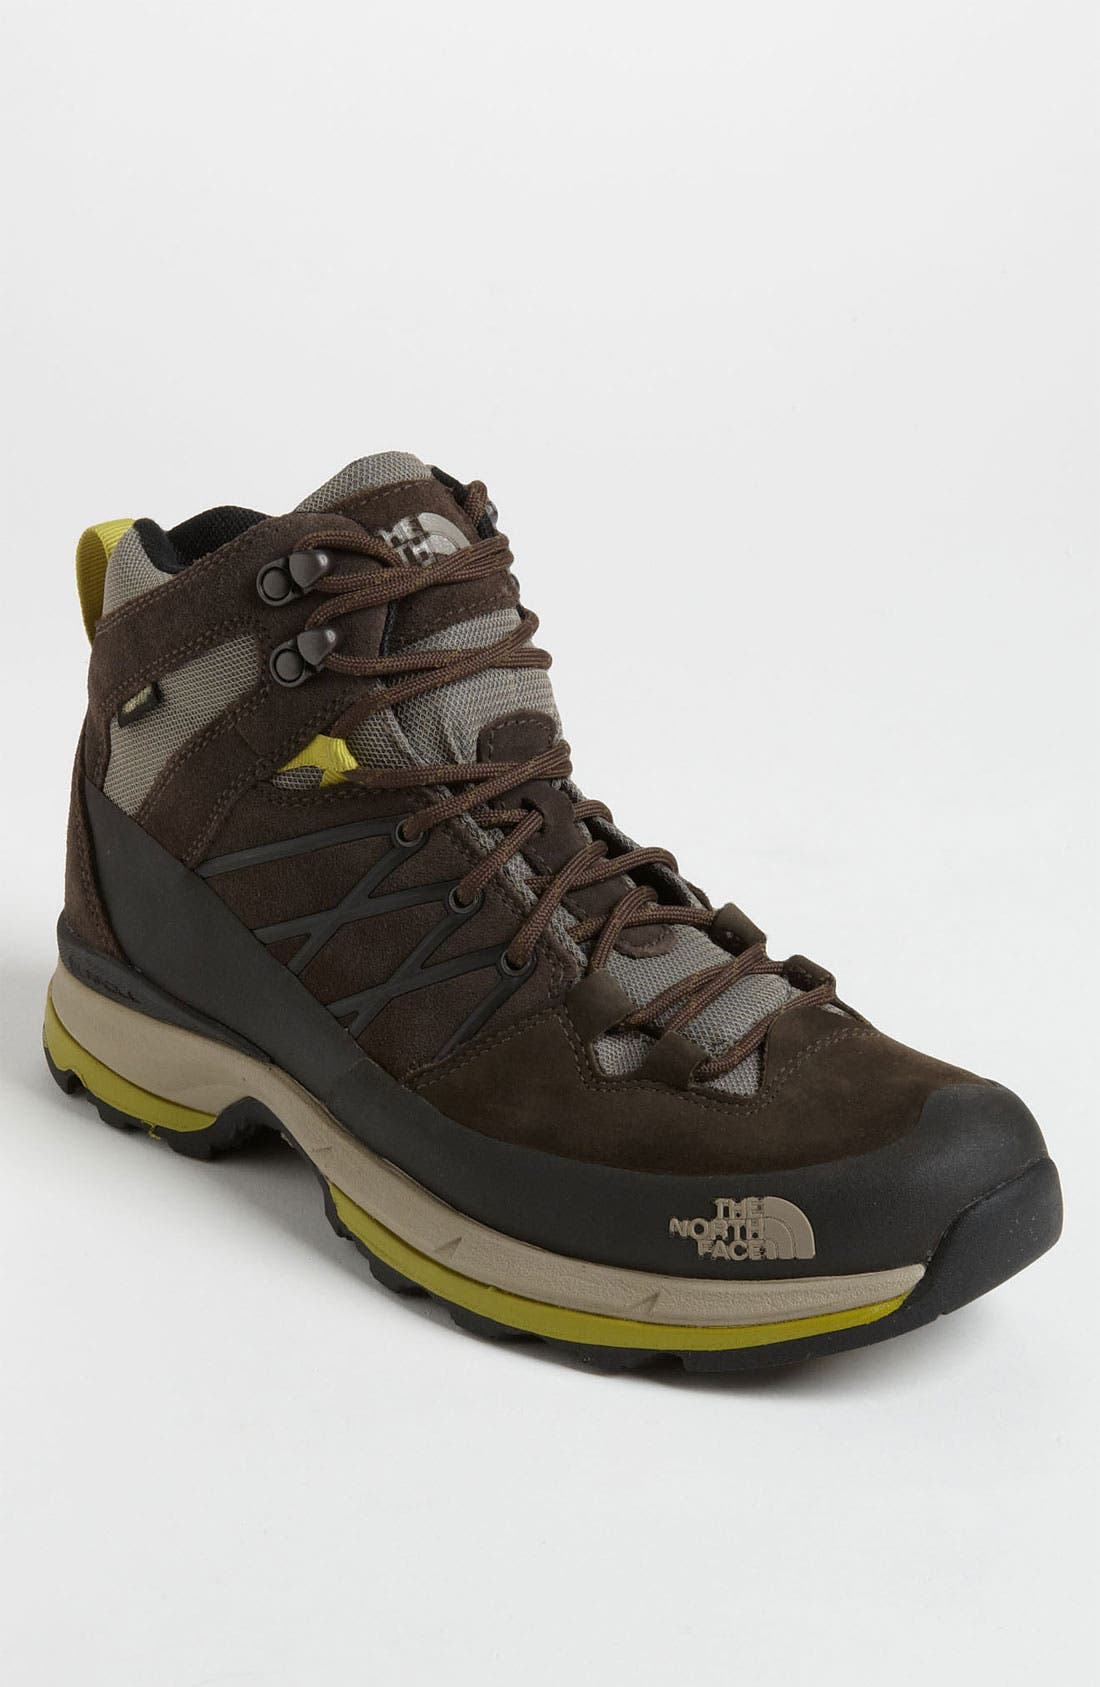 Main Image - The North Face 'Wreck Mid GTX' Hiking Boot